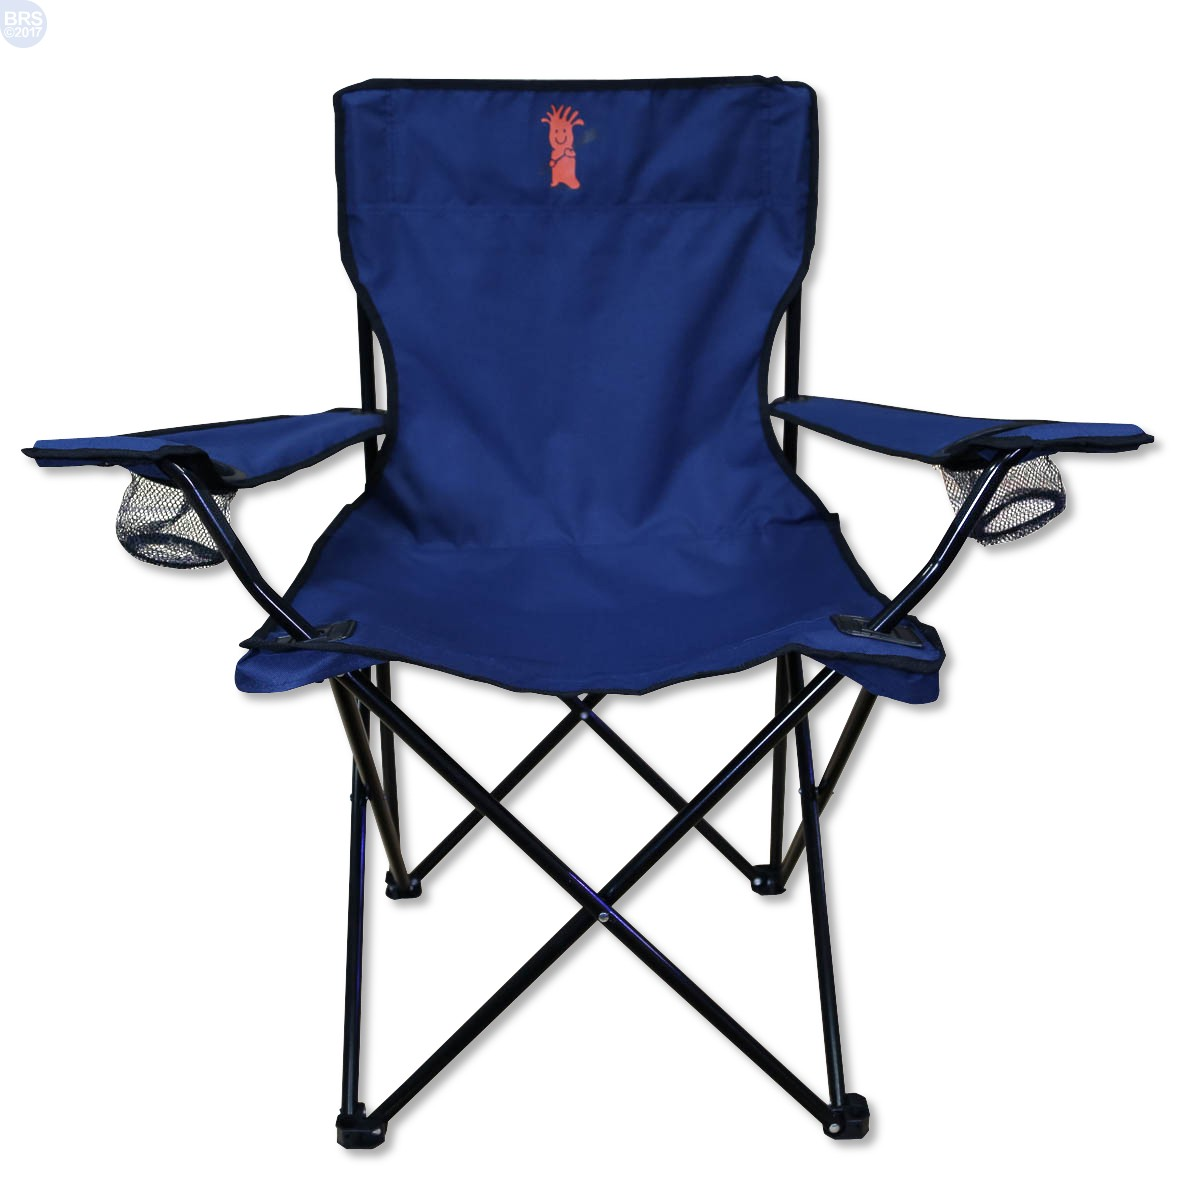 Folding Chair With Carry Bag Brs Bulk Reef Supply